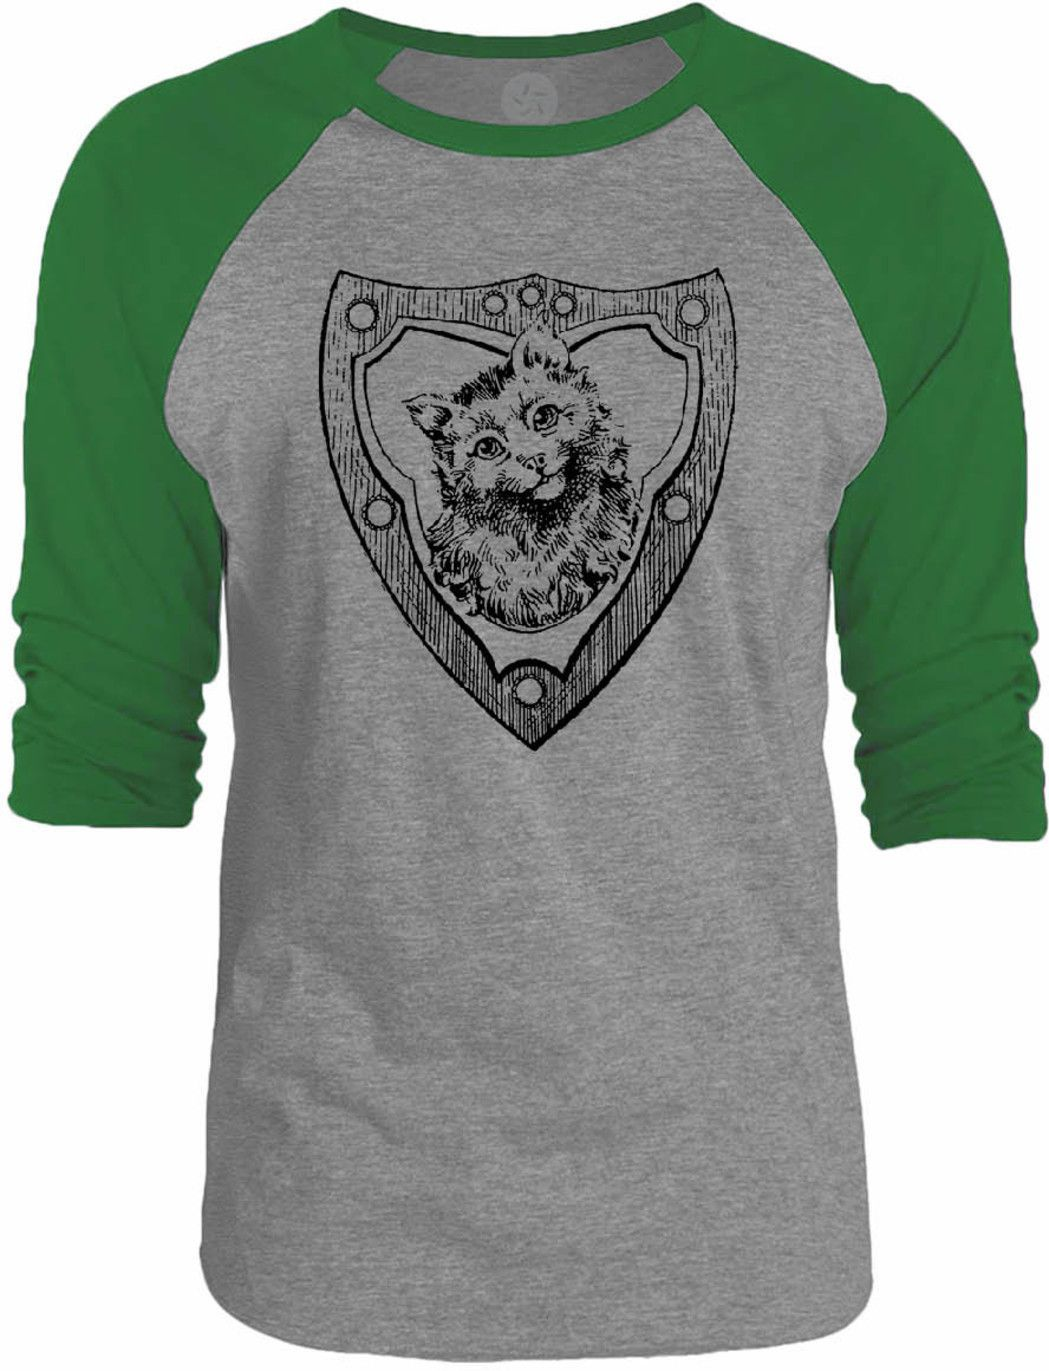 Click Now For 10 Off Use Coupon Code Save 10 At Checkout Cool Tee Shirts Graphic Tee Shirts Mens Tops